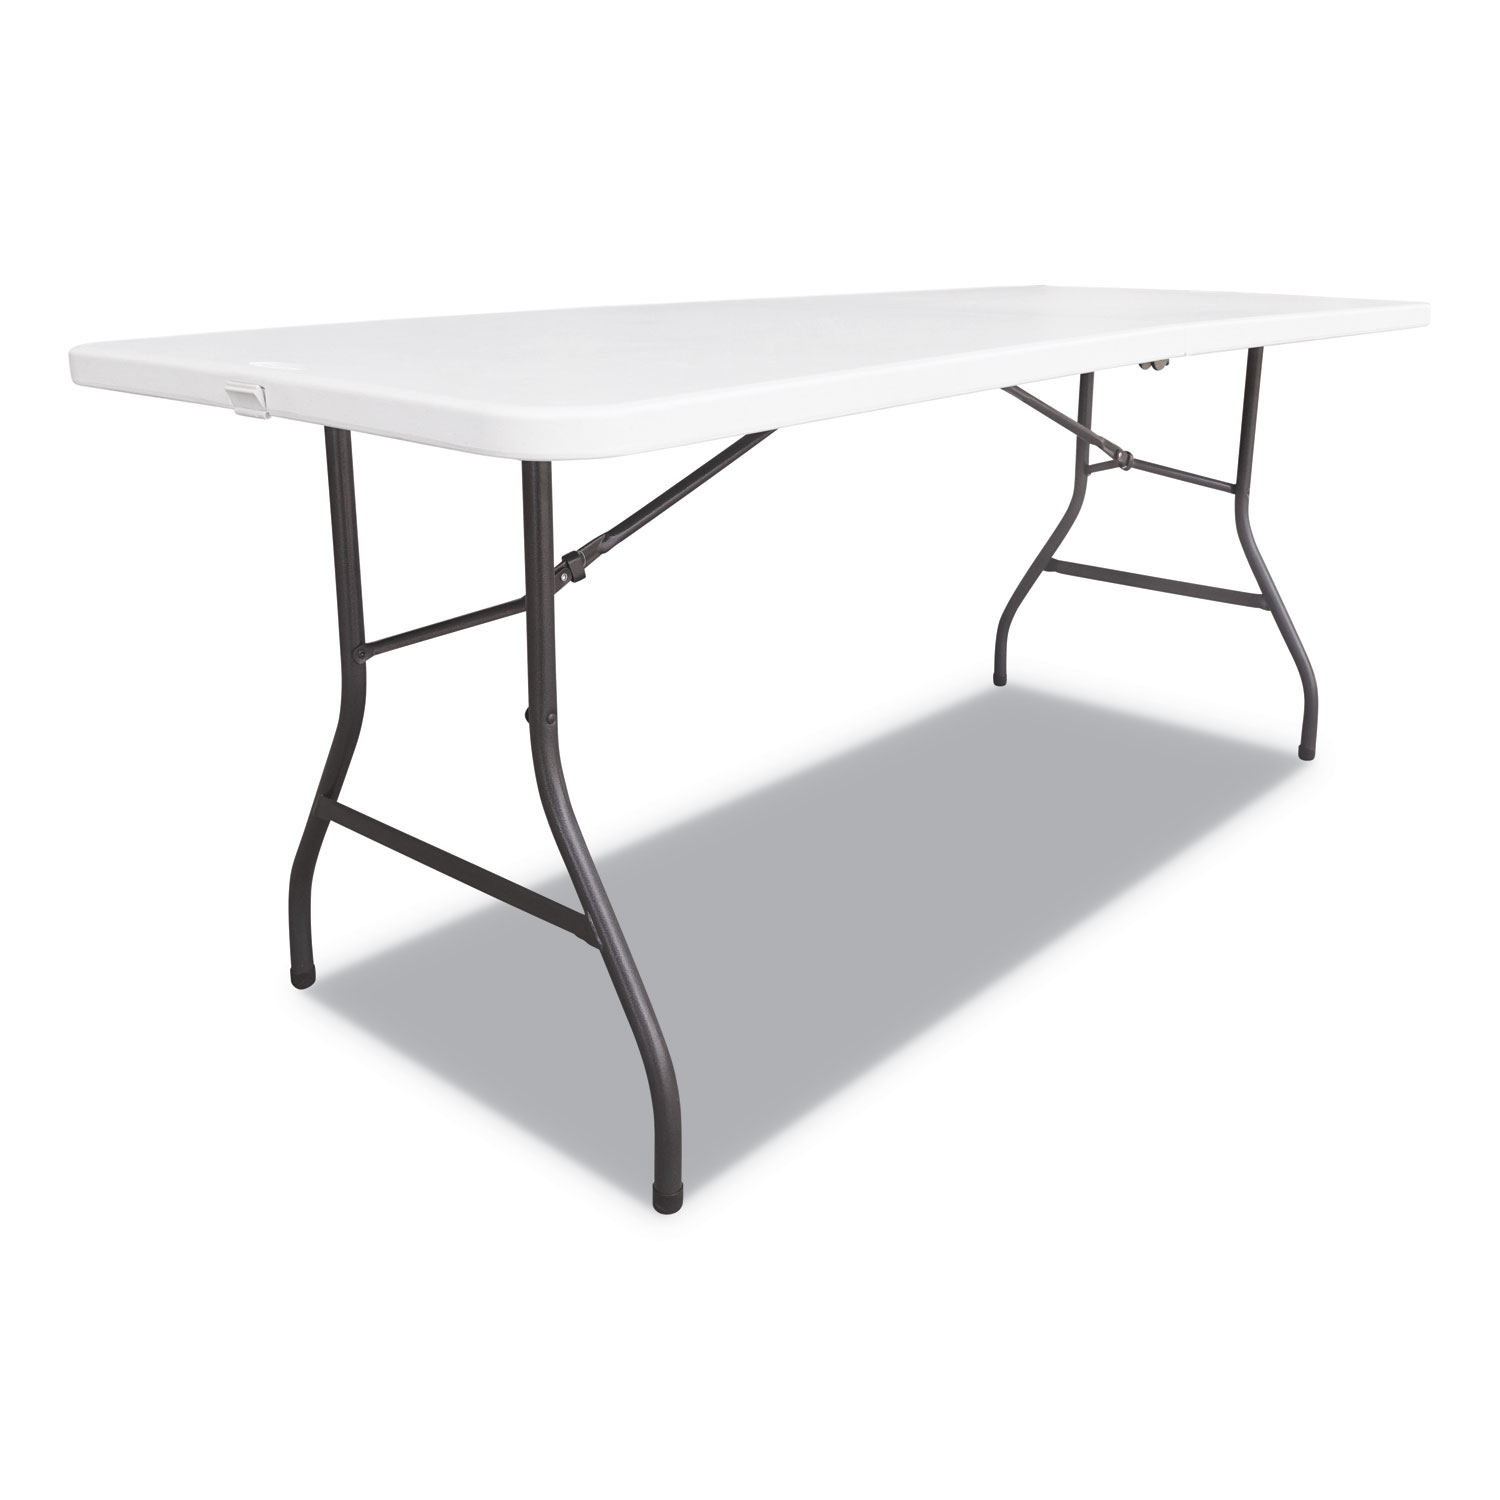 Fold In Half Resin Folding Table 60w X 30d 29h White